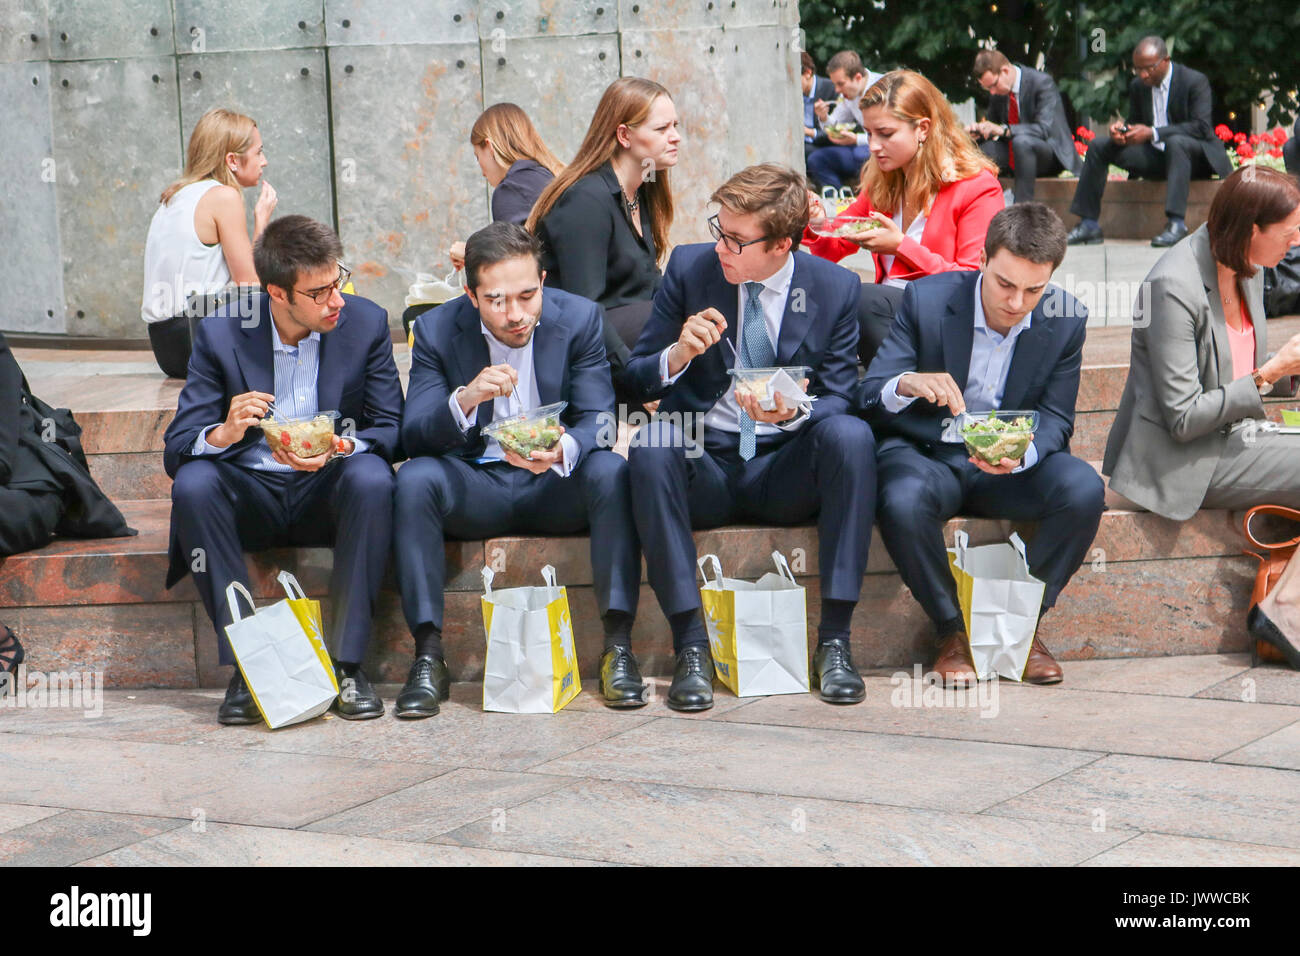 London, UK. 14th August 2017. City workers in the enjoy their lunch in the sunshine in Canary Wharf financial district Stock Photo